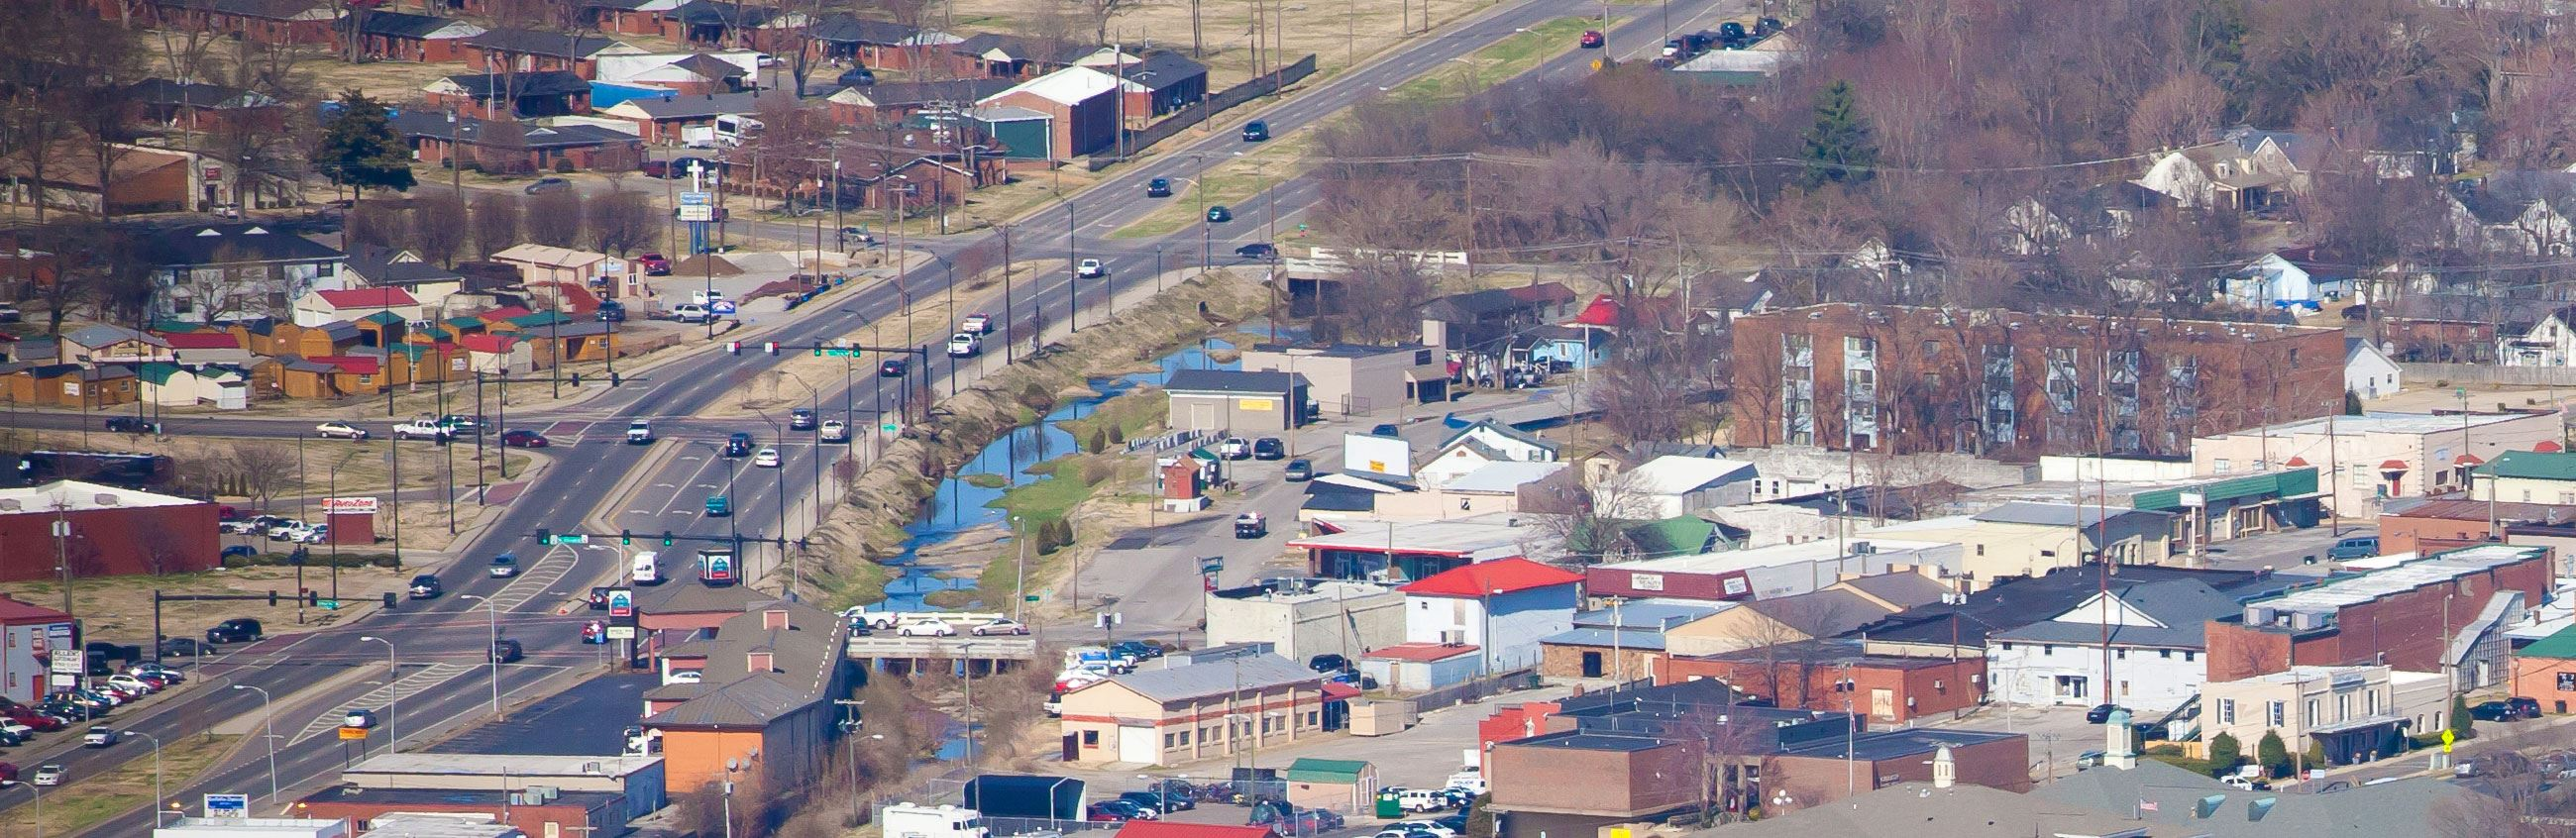 Arial photo of Downtown Gallatin